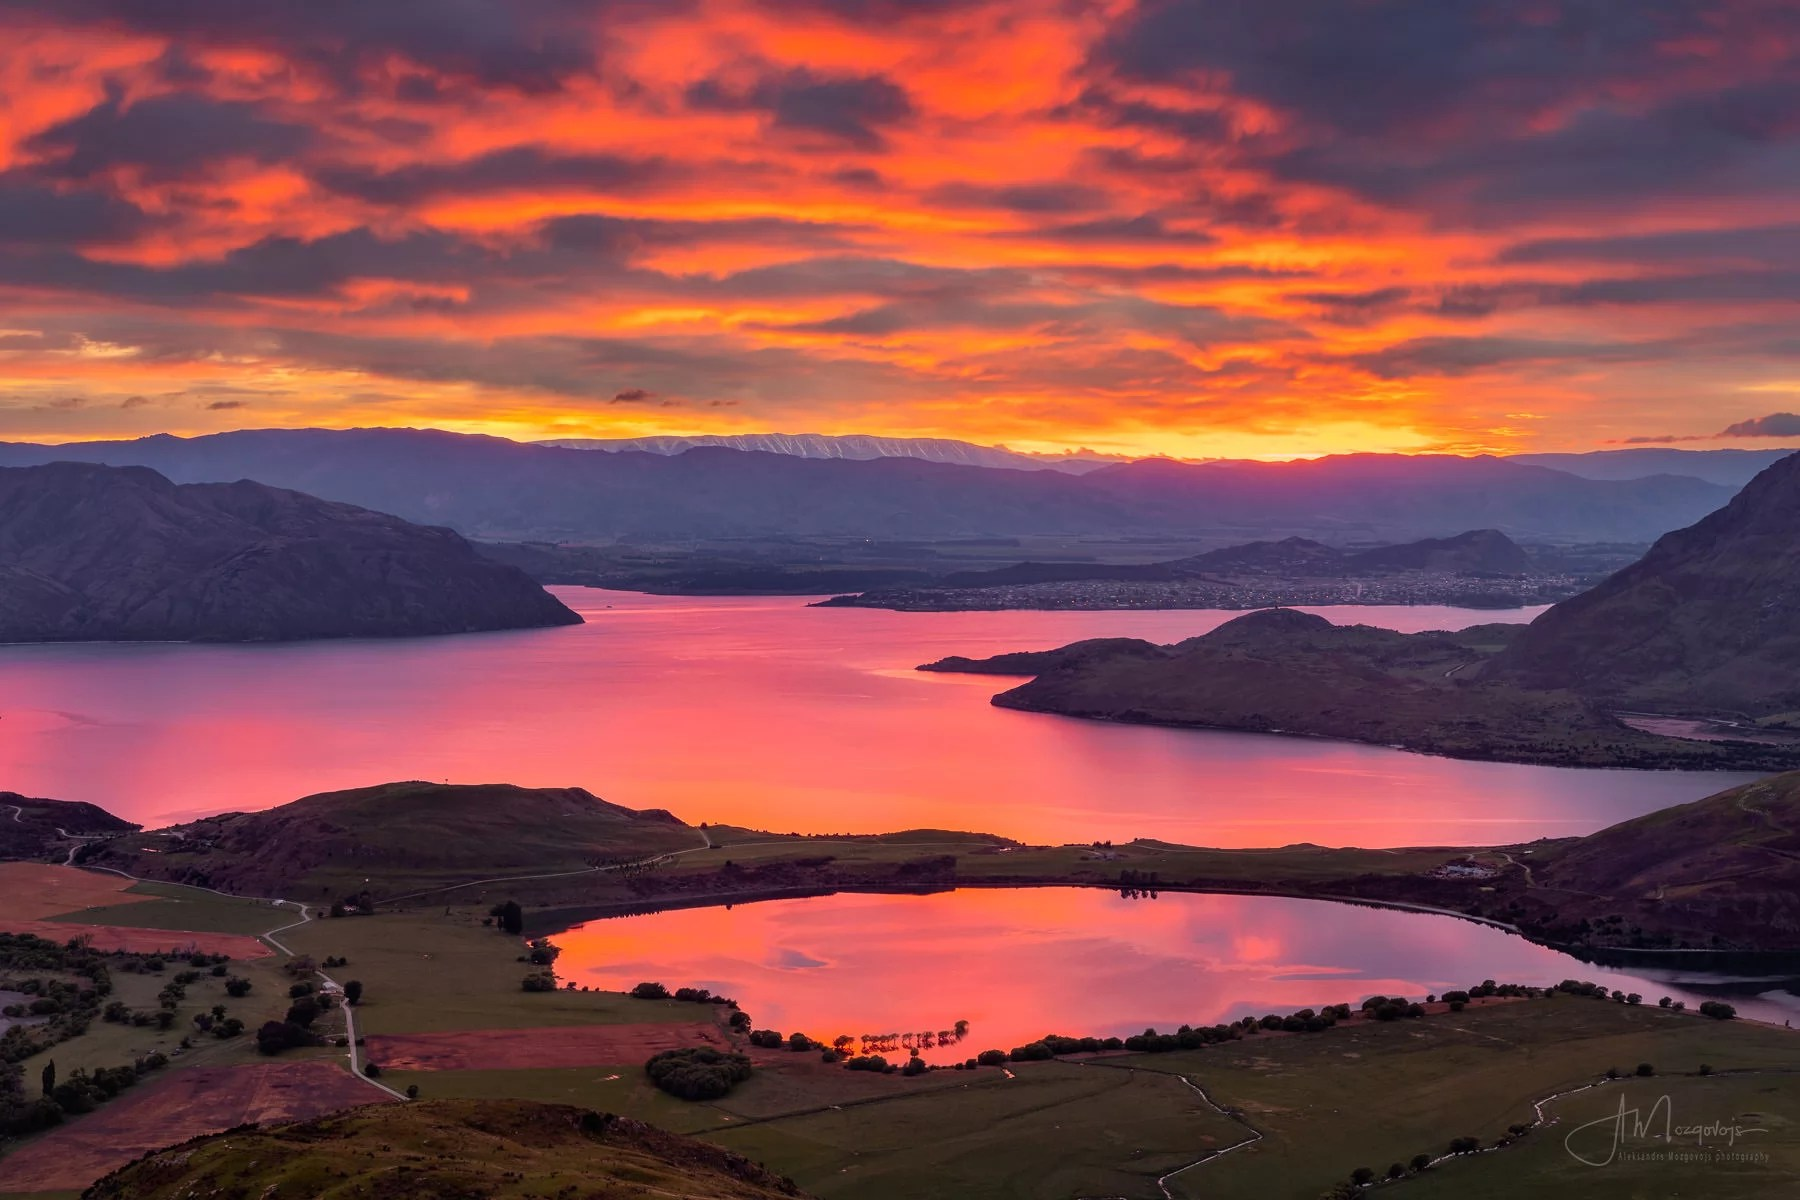 Landscape Photographer's Mini Guide to Wanaka